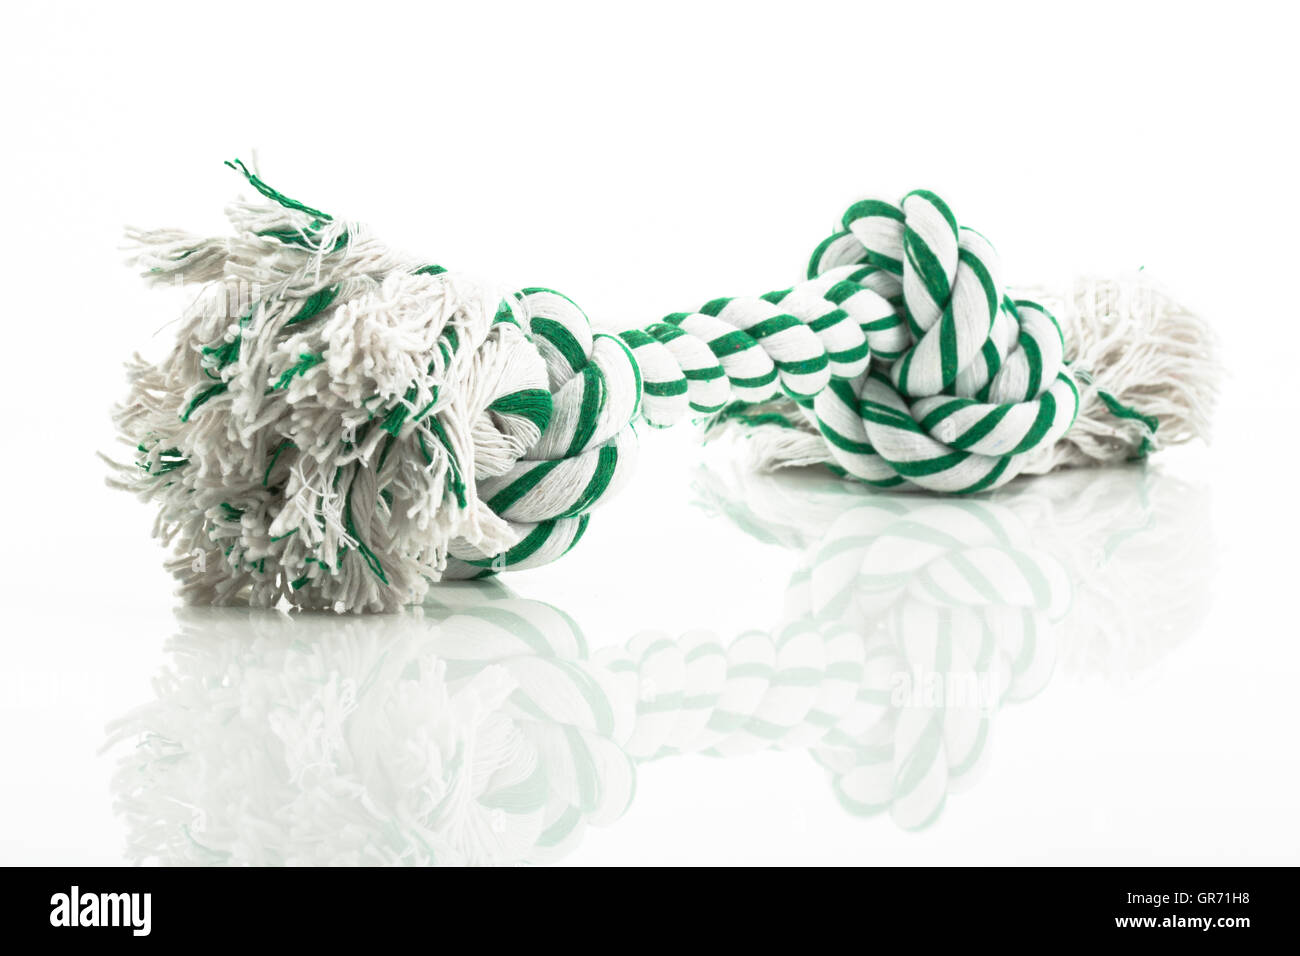 Tug Toy For Dogs - Stock Image